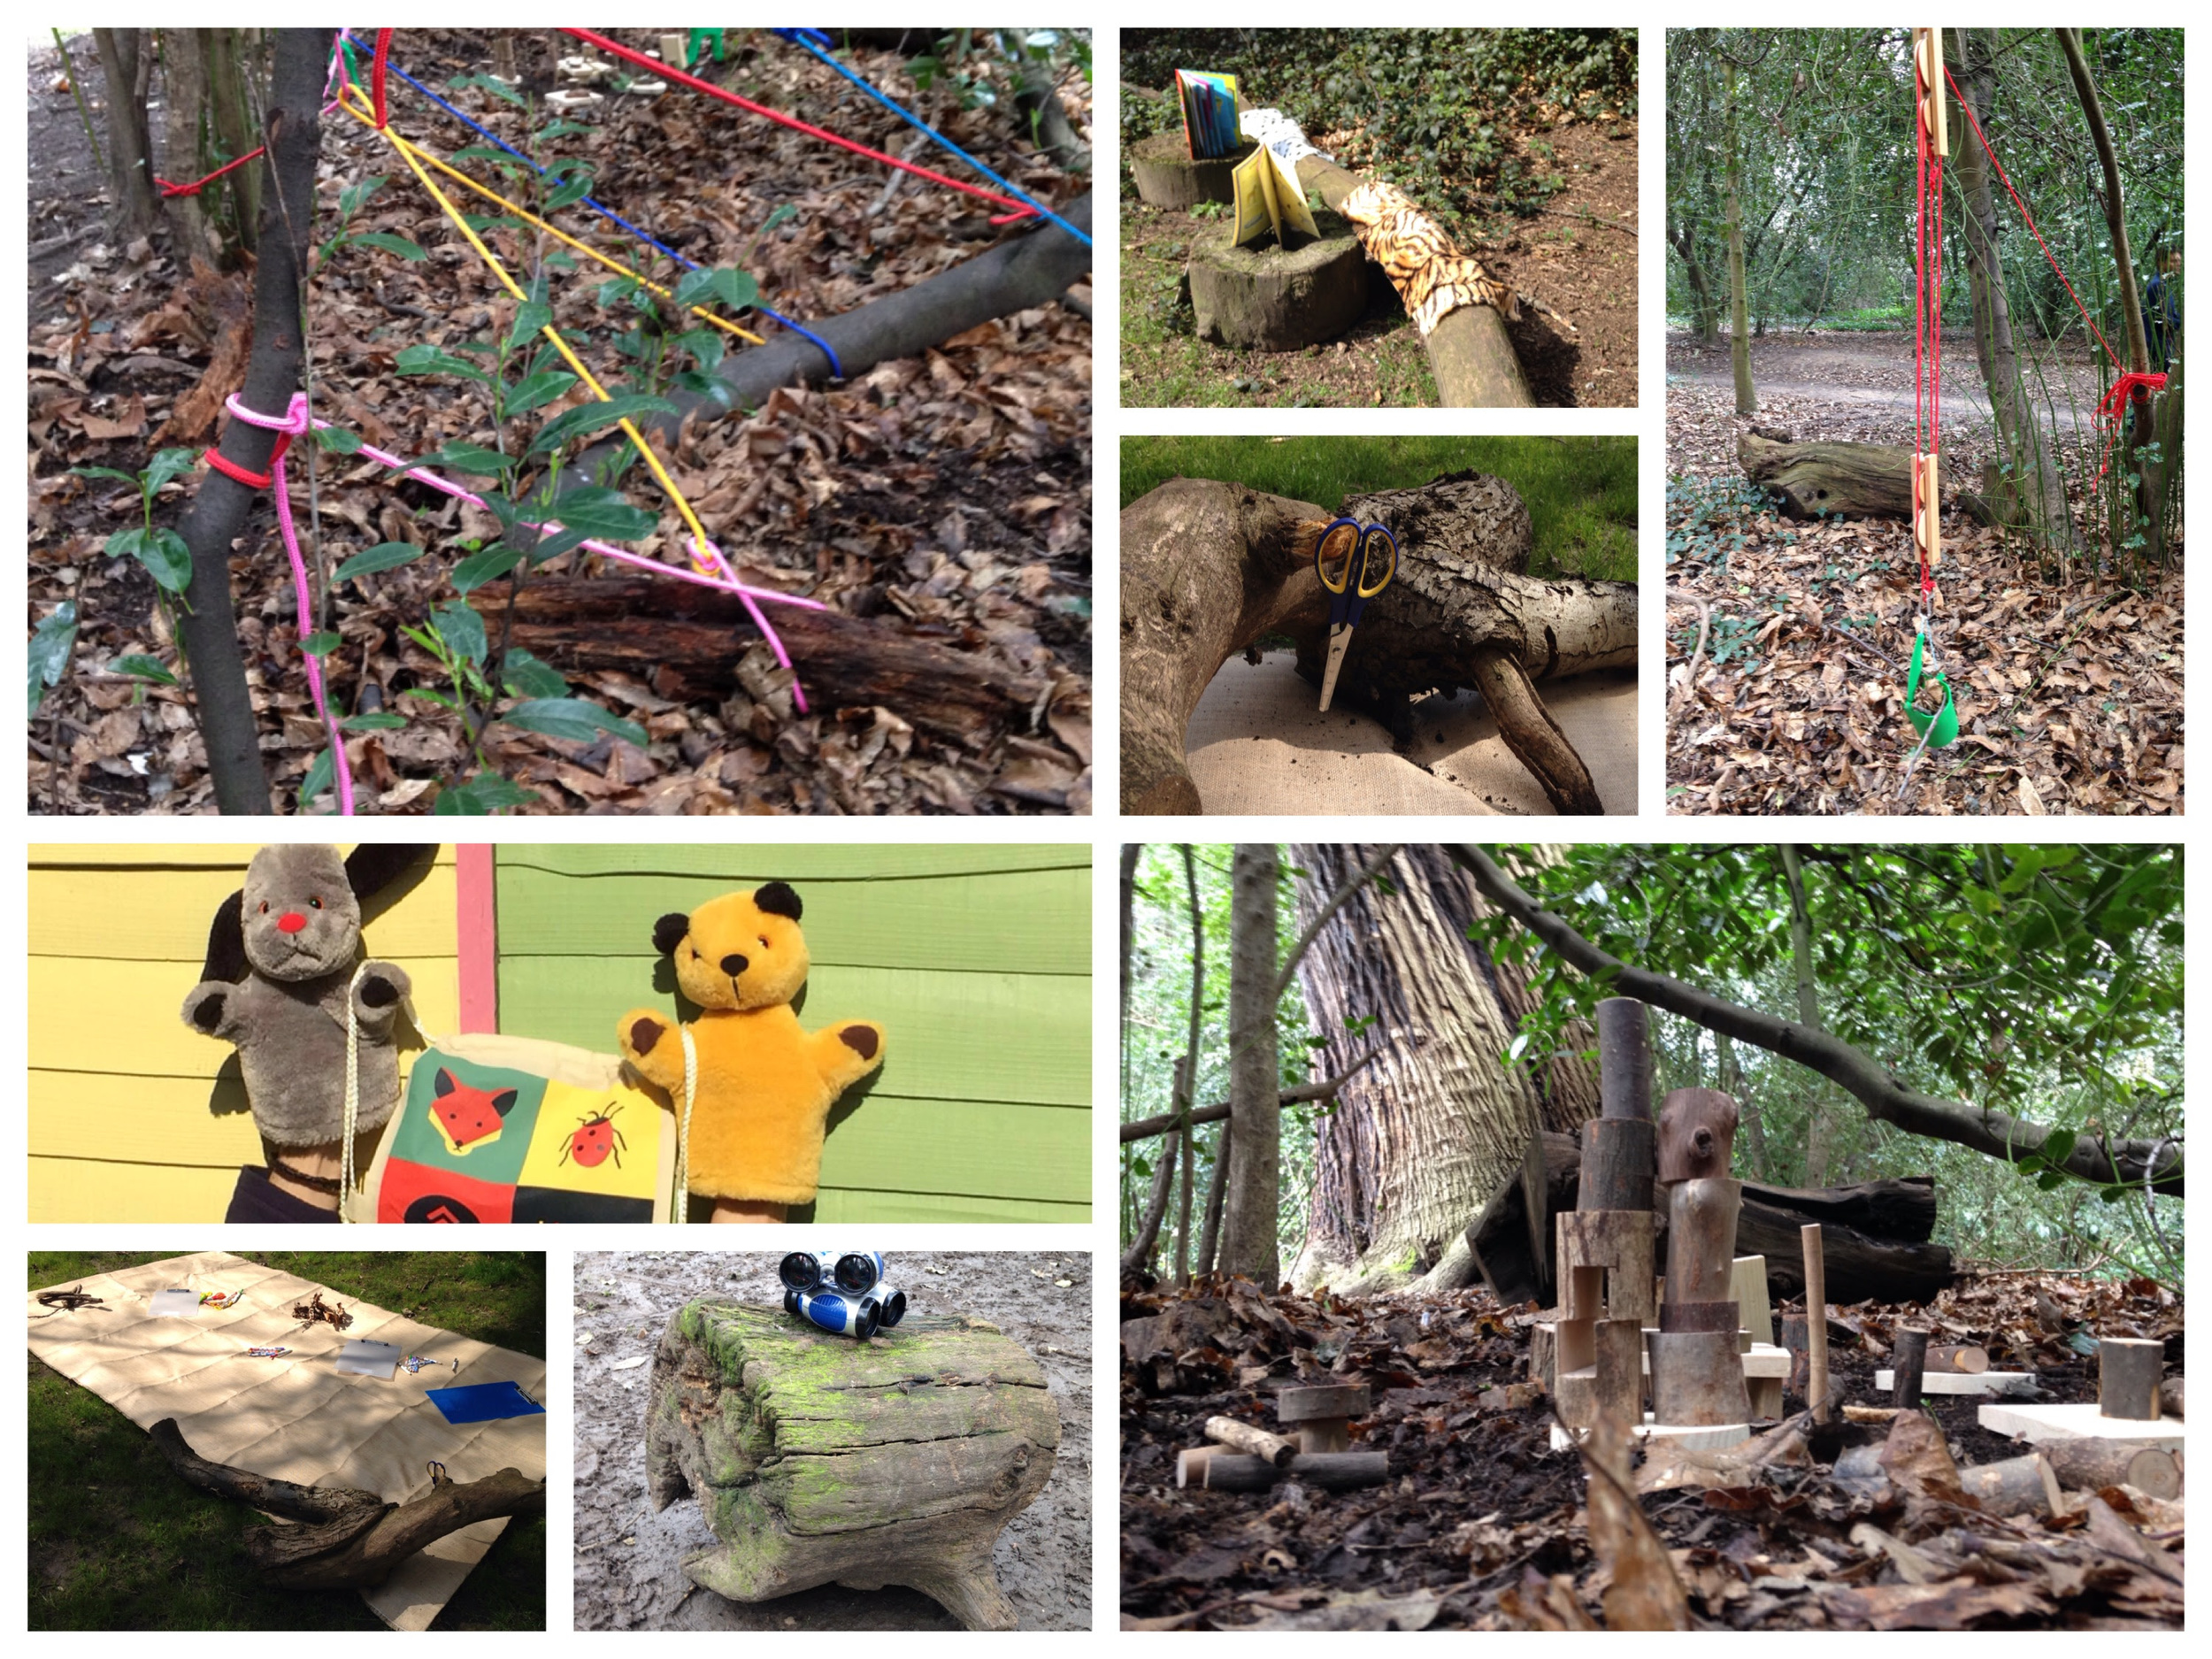 The Big Little Forest Folk had a lot of fun today scoping the site